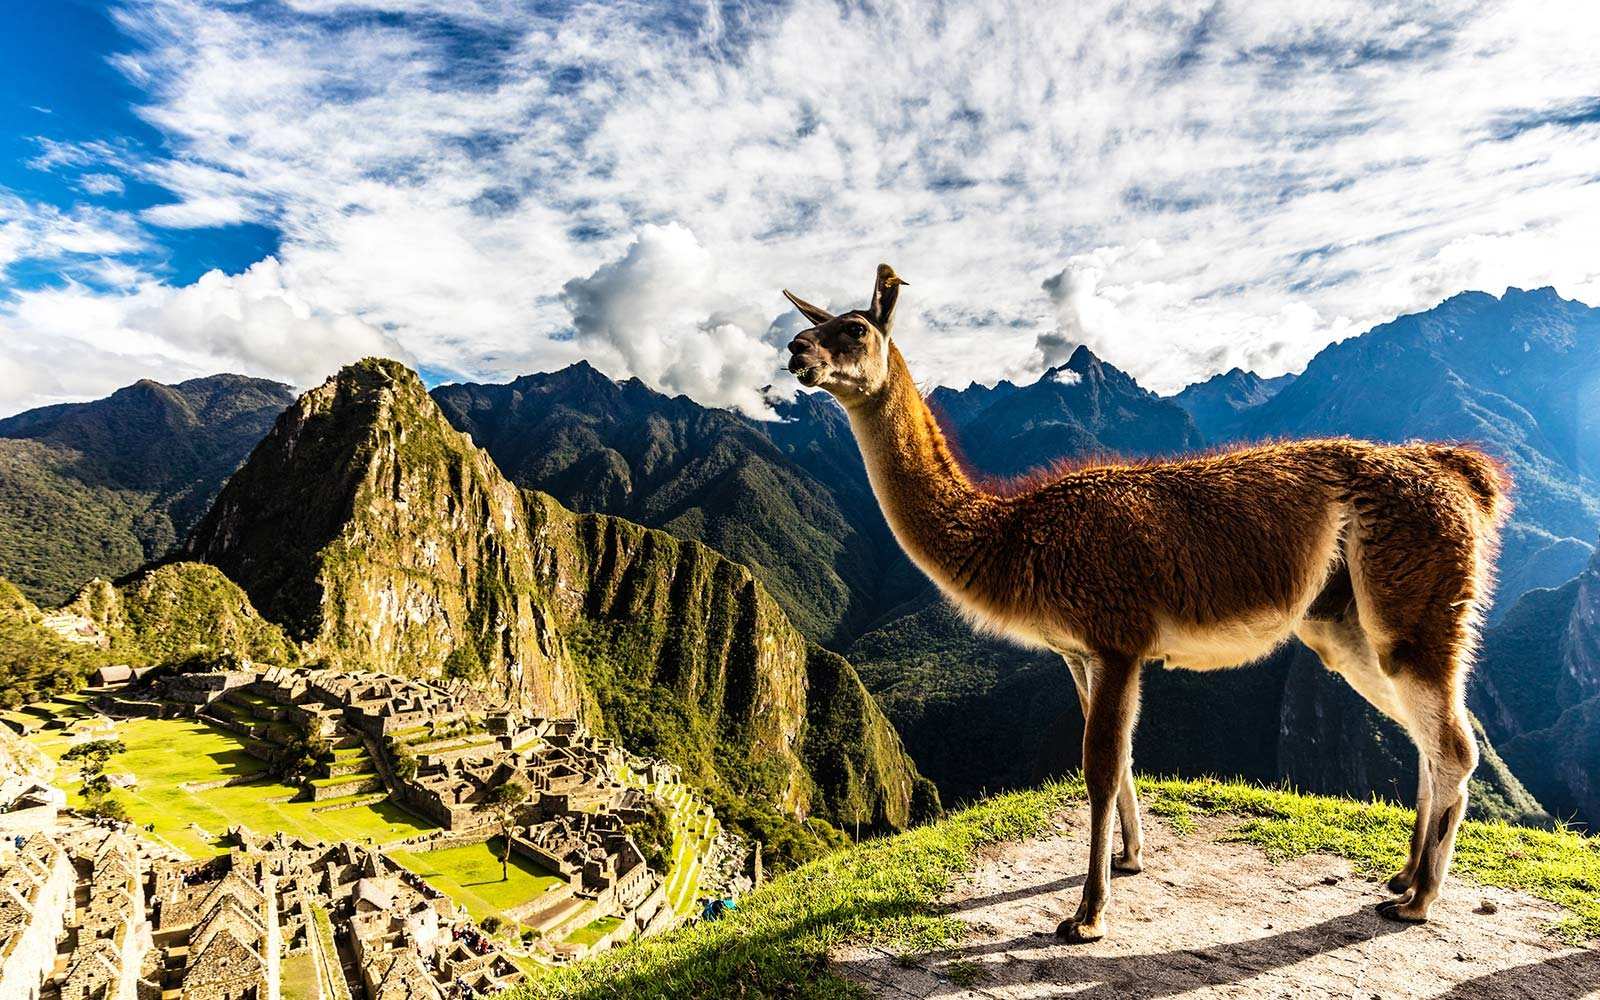 Fall In Chicago Wallpaper Flights To Peru Are On Sale Starting At 375 Round Trip